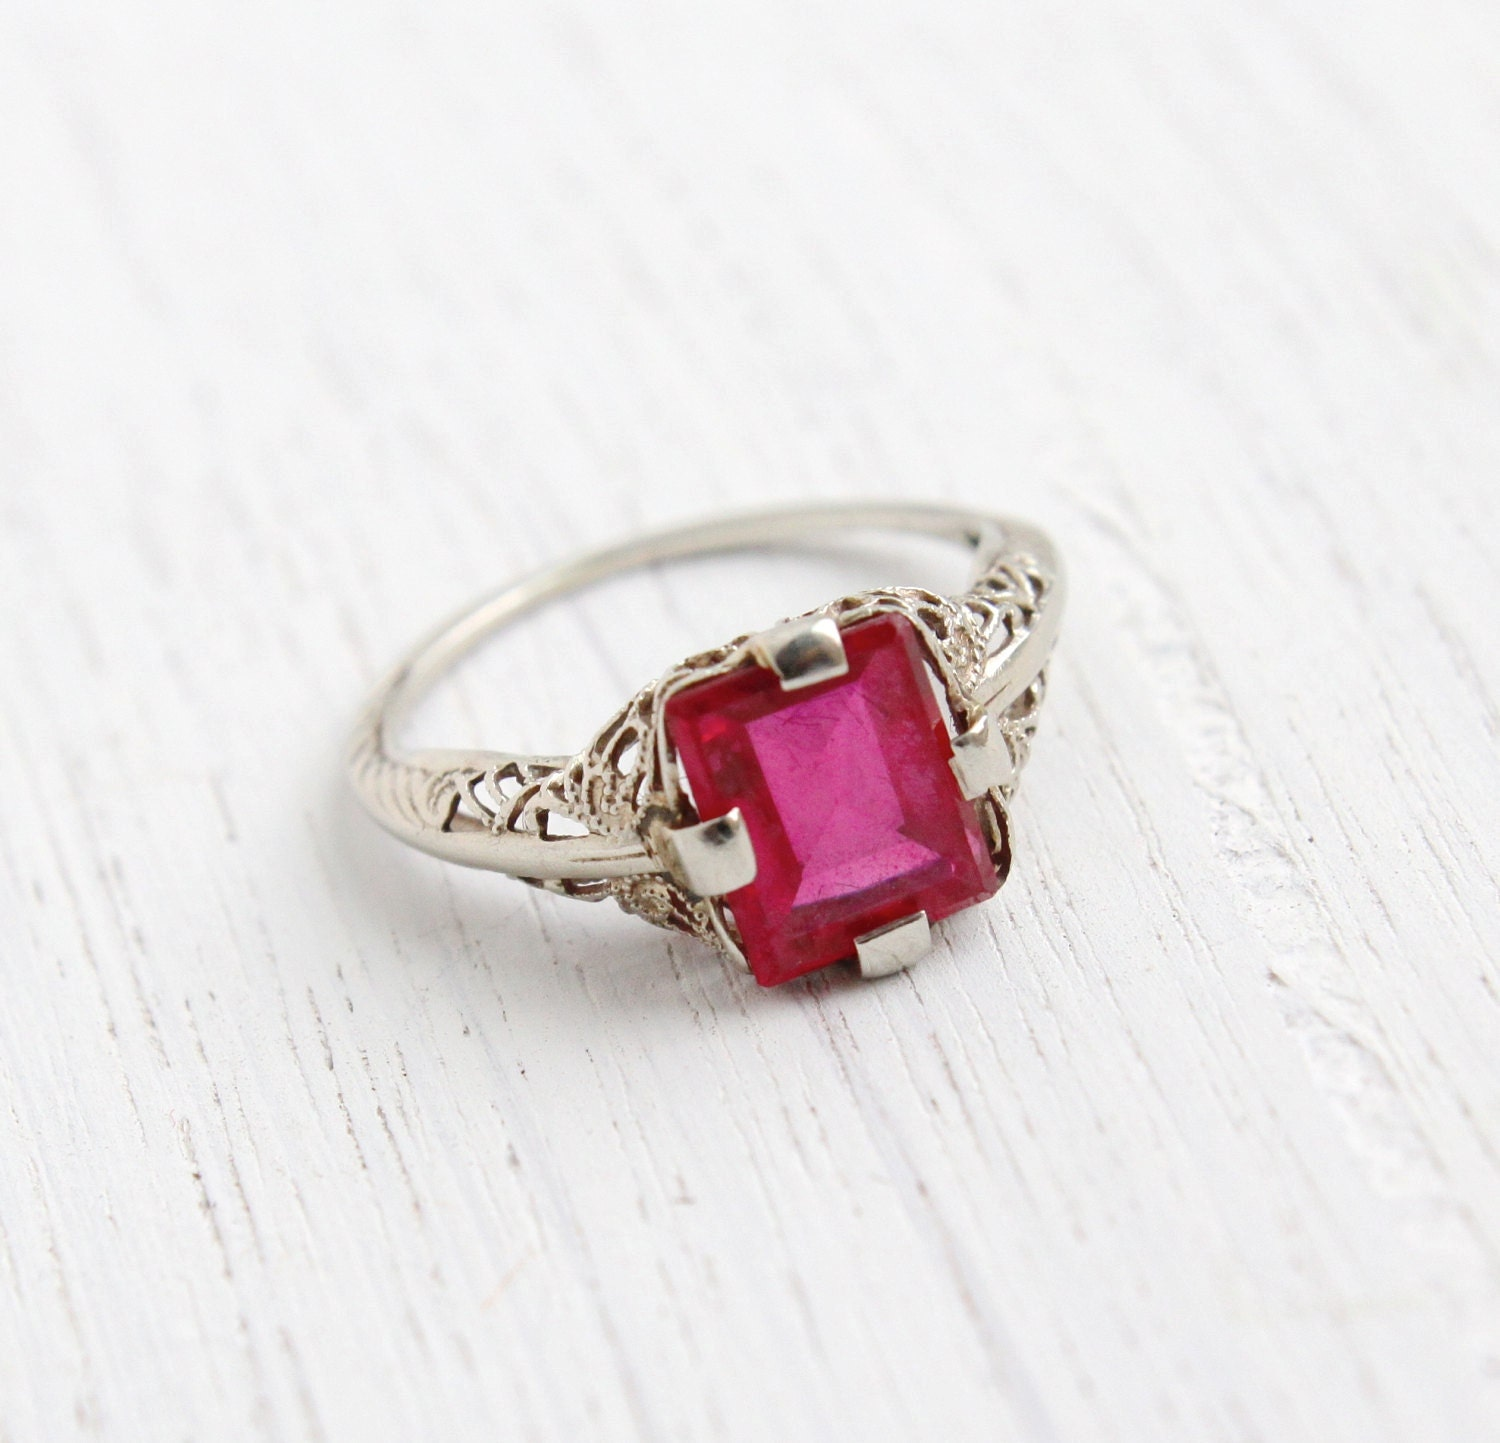 Antique 10k White Gold Genuine Ruby Ring Size 5 Vintage